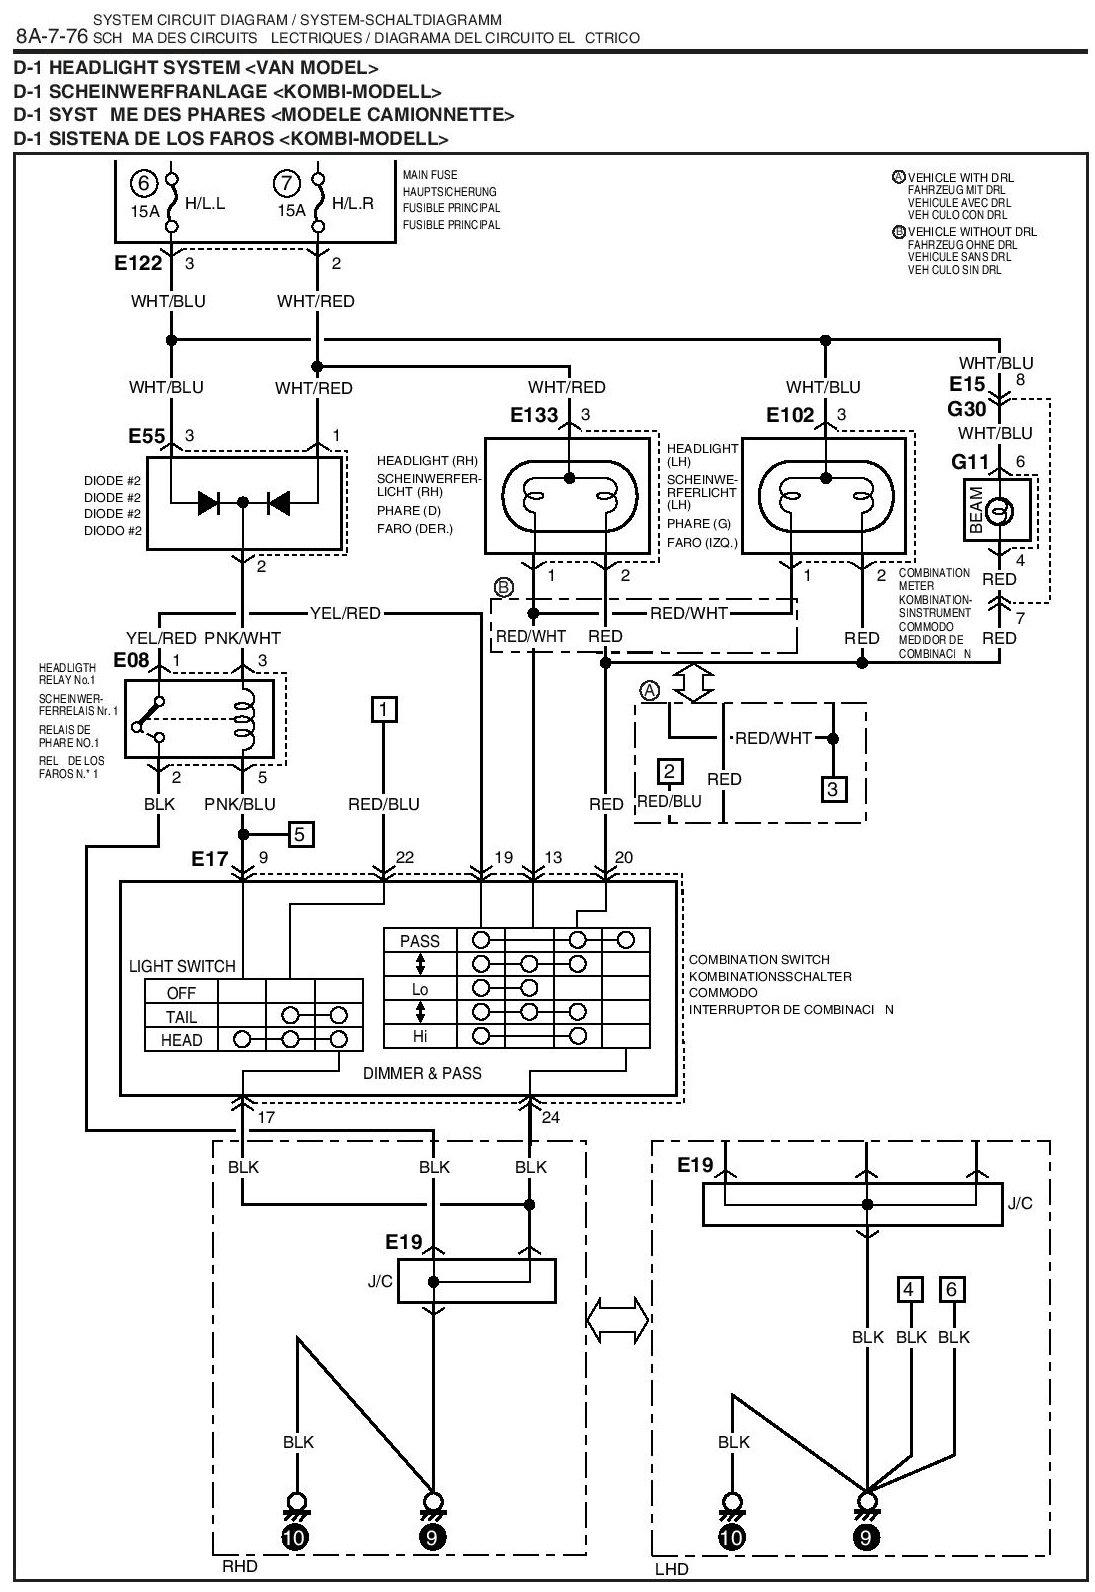 Chevy Cruze Engine Diagram Water Pump